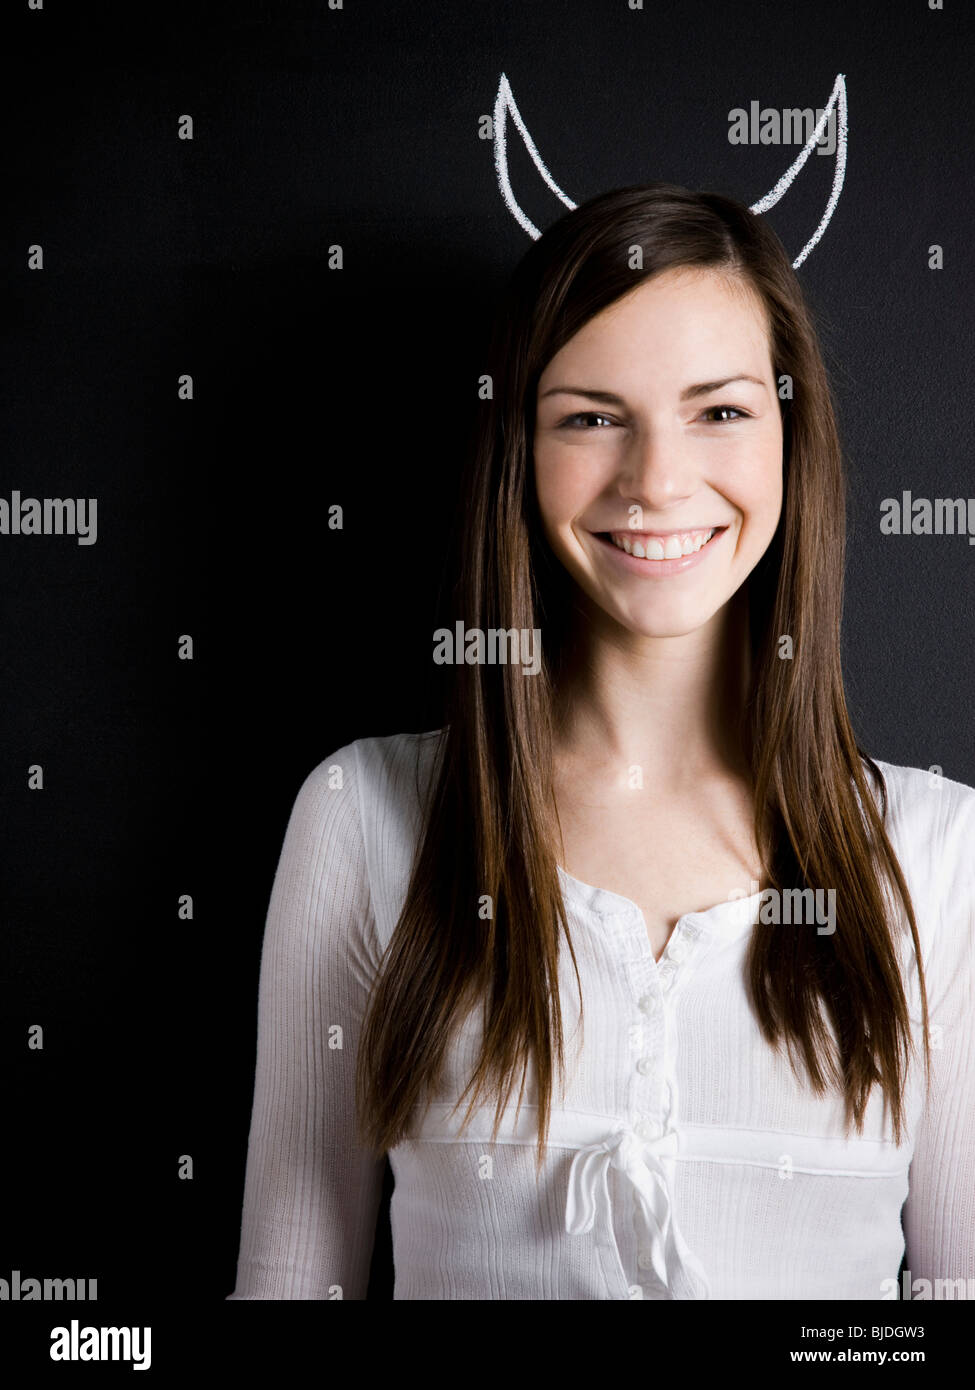 young woman against a chalkboard Stock Photo